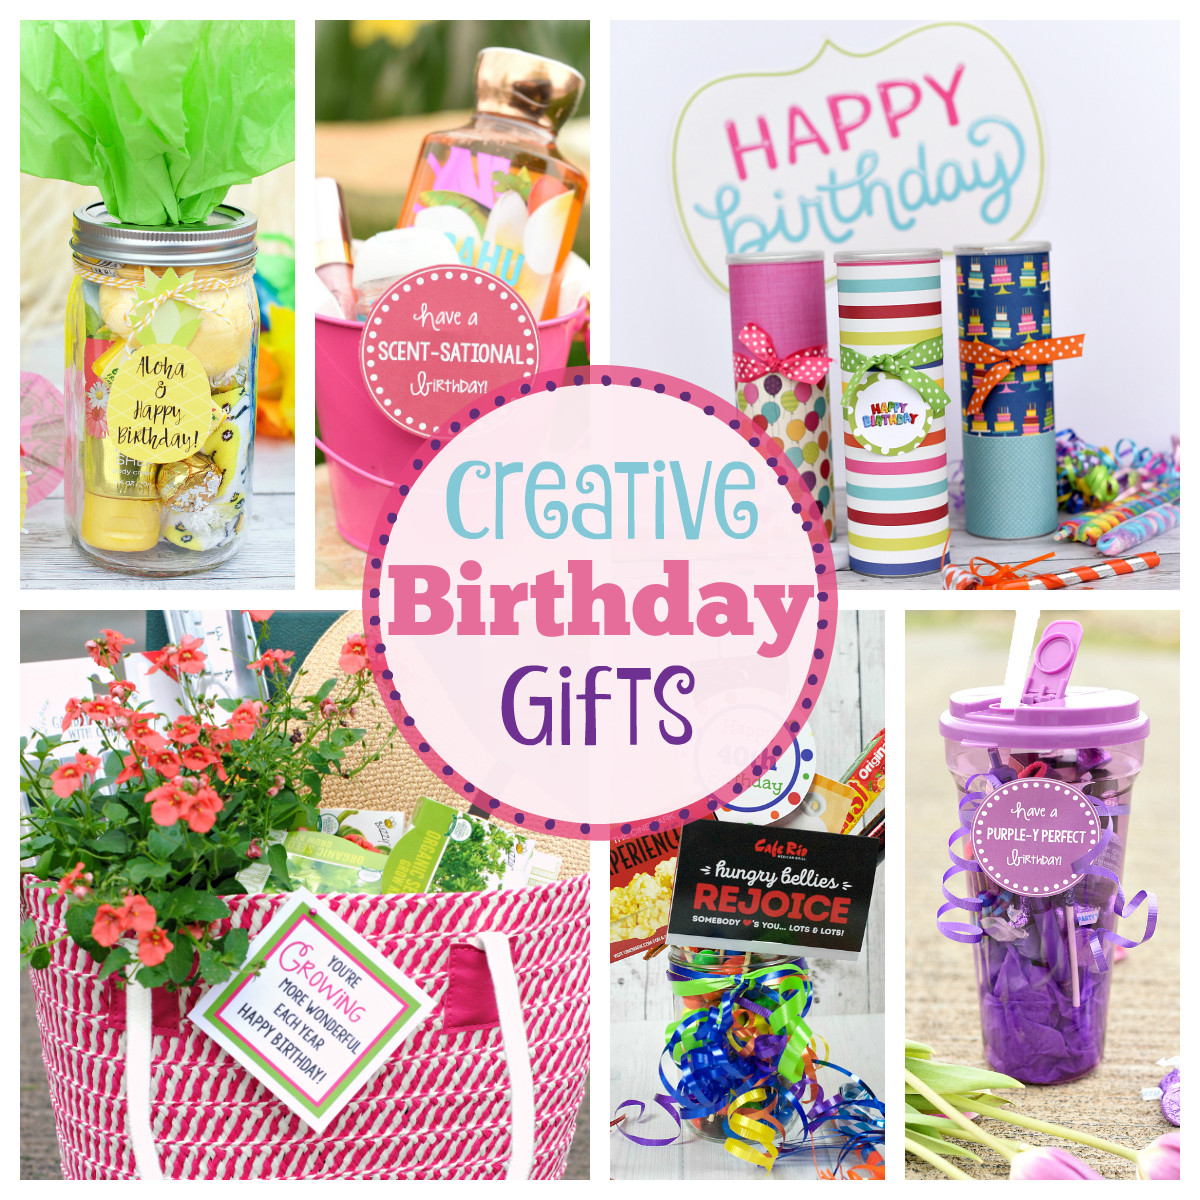 Best Friends Birthday Gifts  Creative Birthday Gifts for Friends – Fun Squared